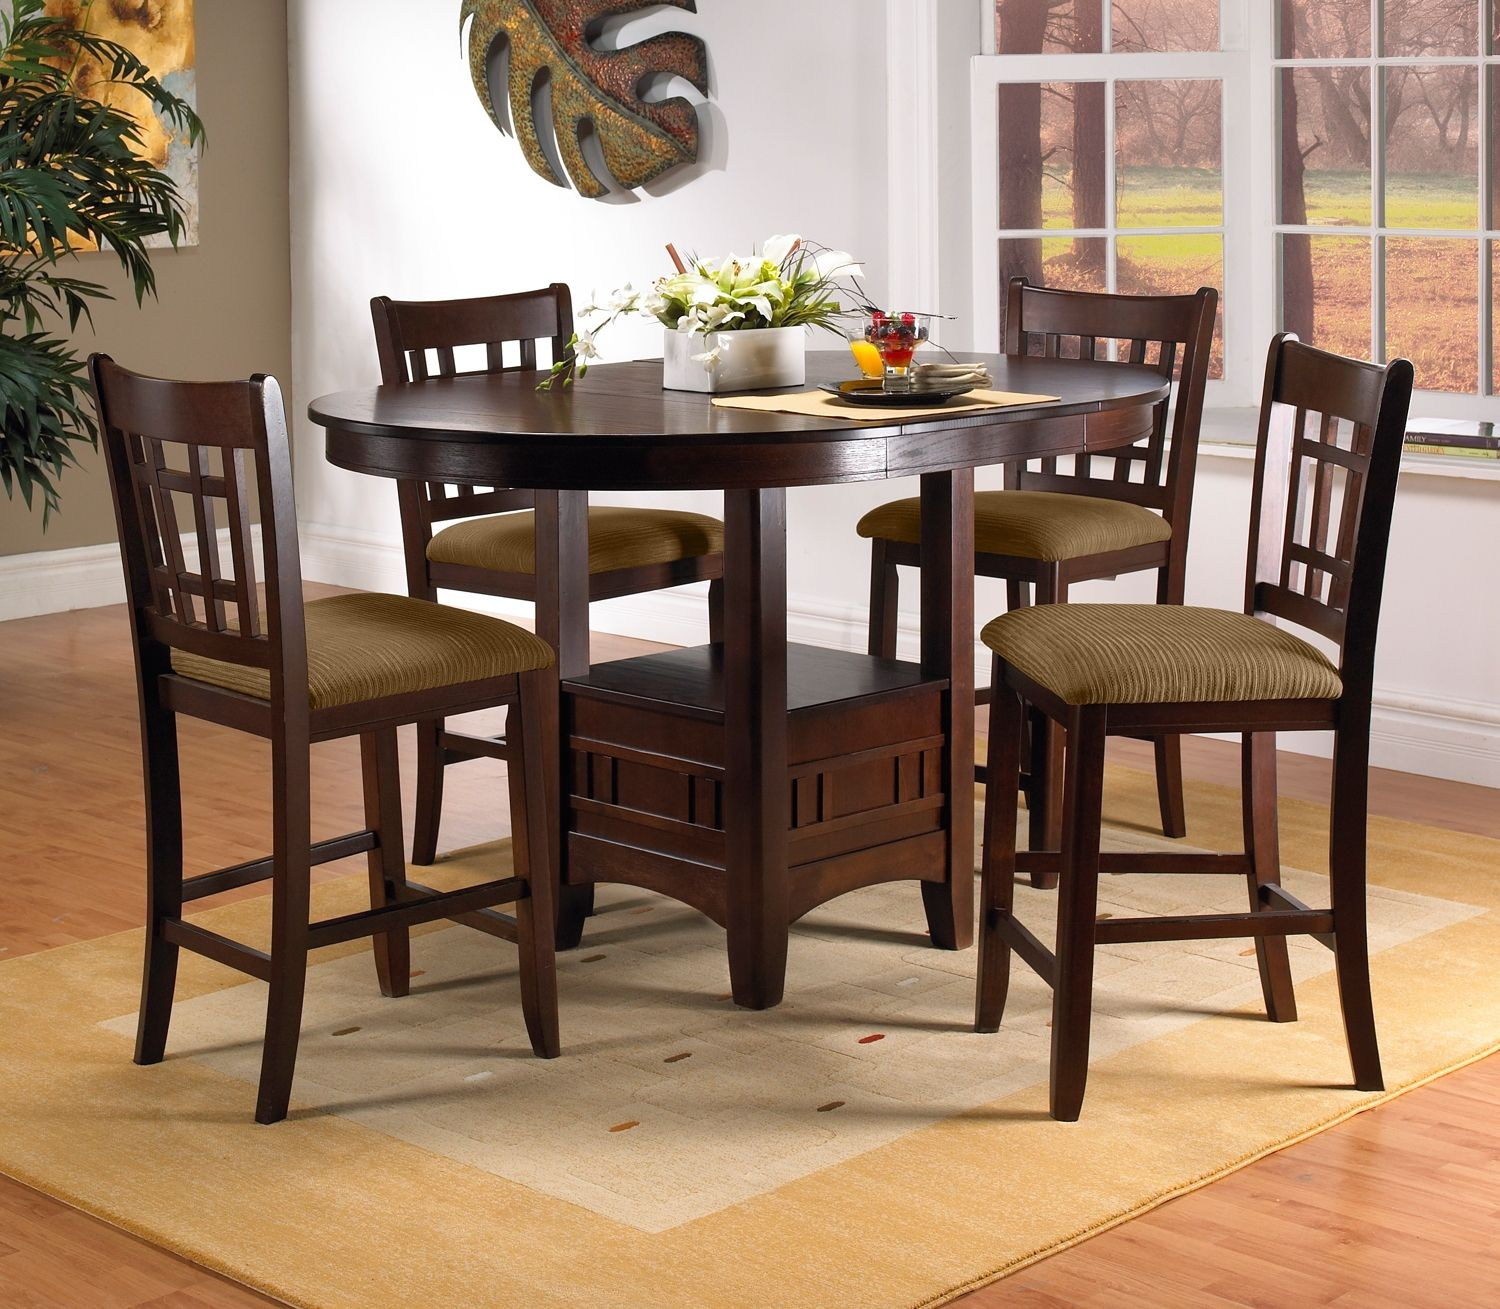 Elegant Casual Dining Room Furniture The Brighton II Collection Brighton II Pub  Table Photo Gallery